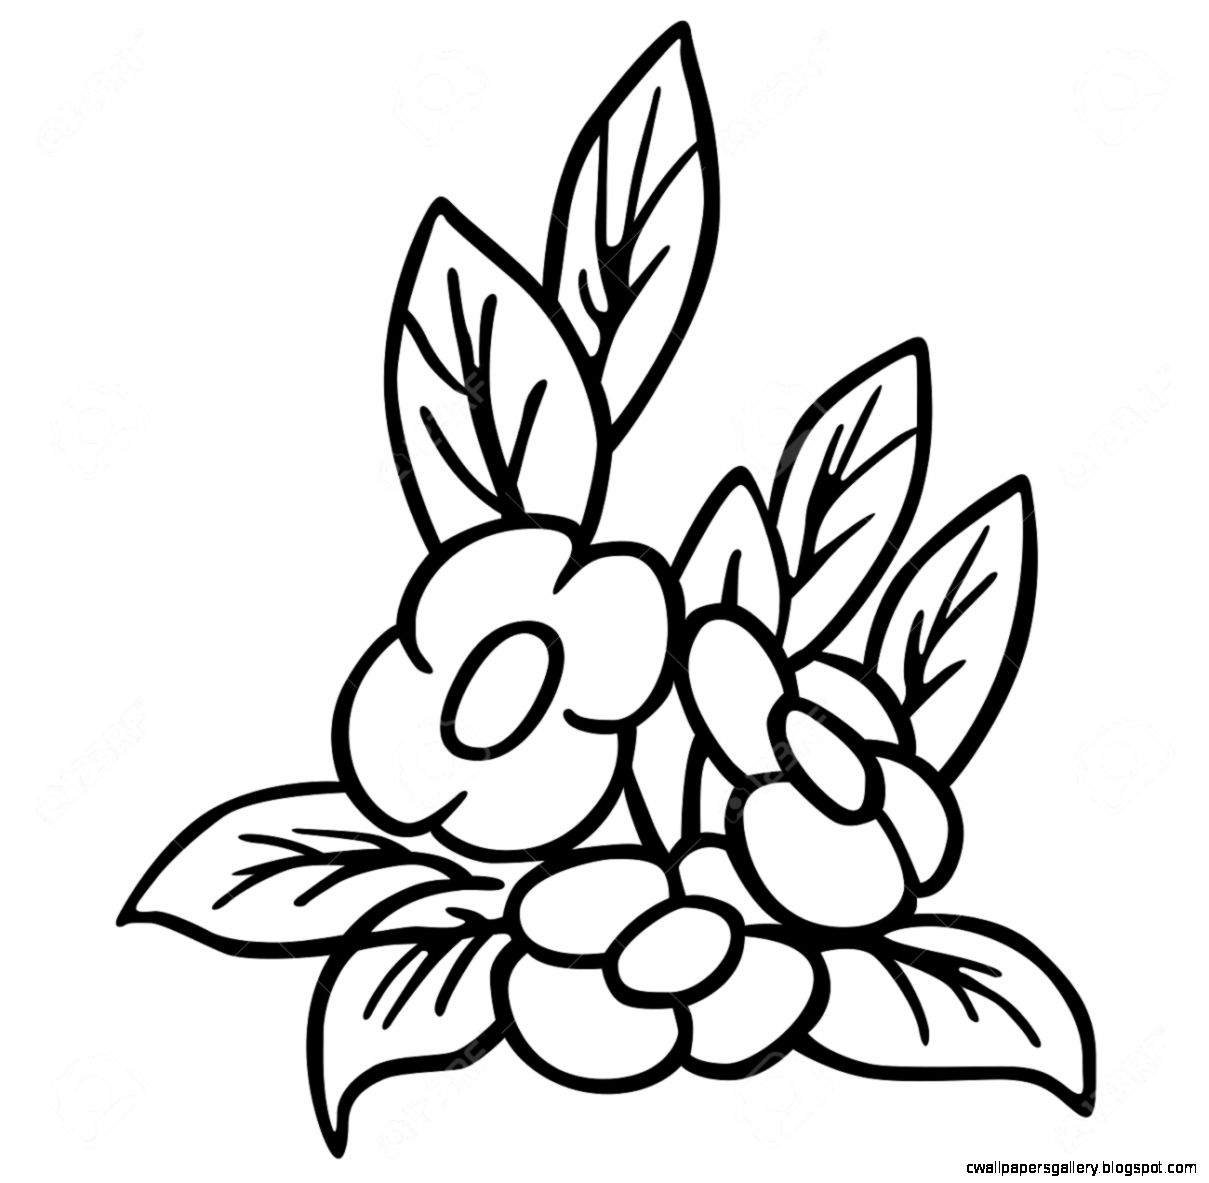 Flower   Black And White Cartoon Illustration Royalty Free